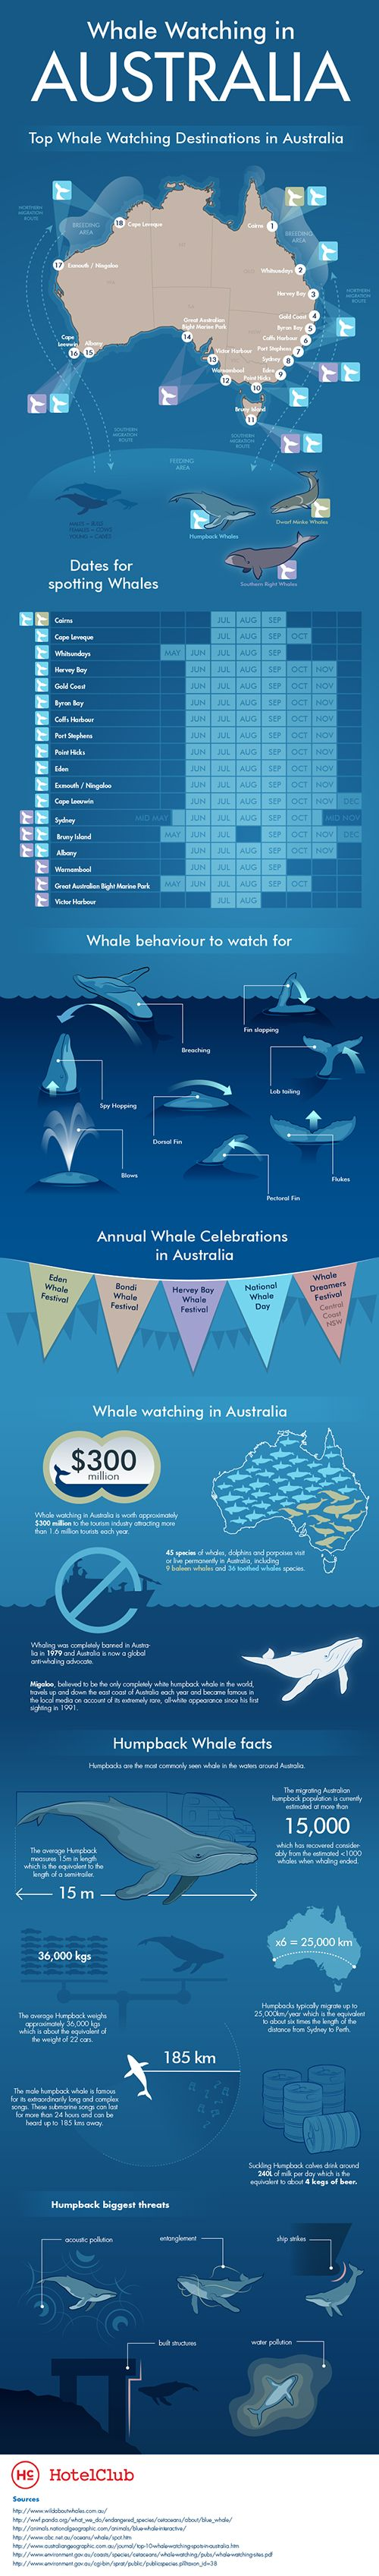 Planning on your next vacation trip? Want to go Whale Watching? Australia is considered to be one of the best places to see whales in the world. The most common sighted whales are southern rights and humpbacks. However, there is also the chance to ascertain other species, like blue whales, dwarf minke whales and southern right whales from several spots along Australias outline. # We Educate Travellers for More Productive, Efficient and Safer Travel! http://intelligenttravel.com.au/